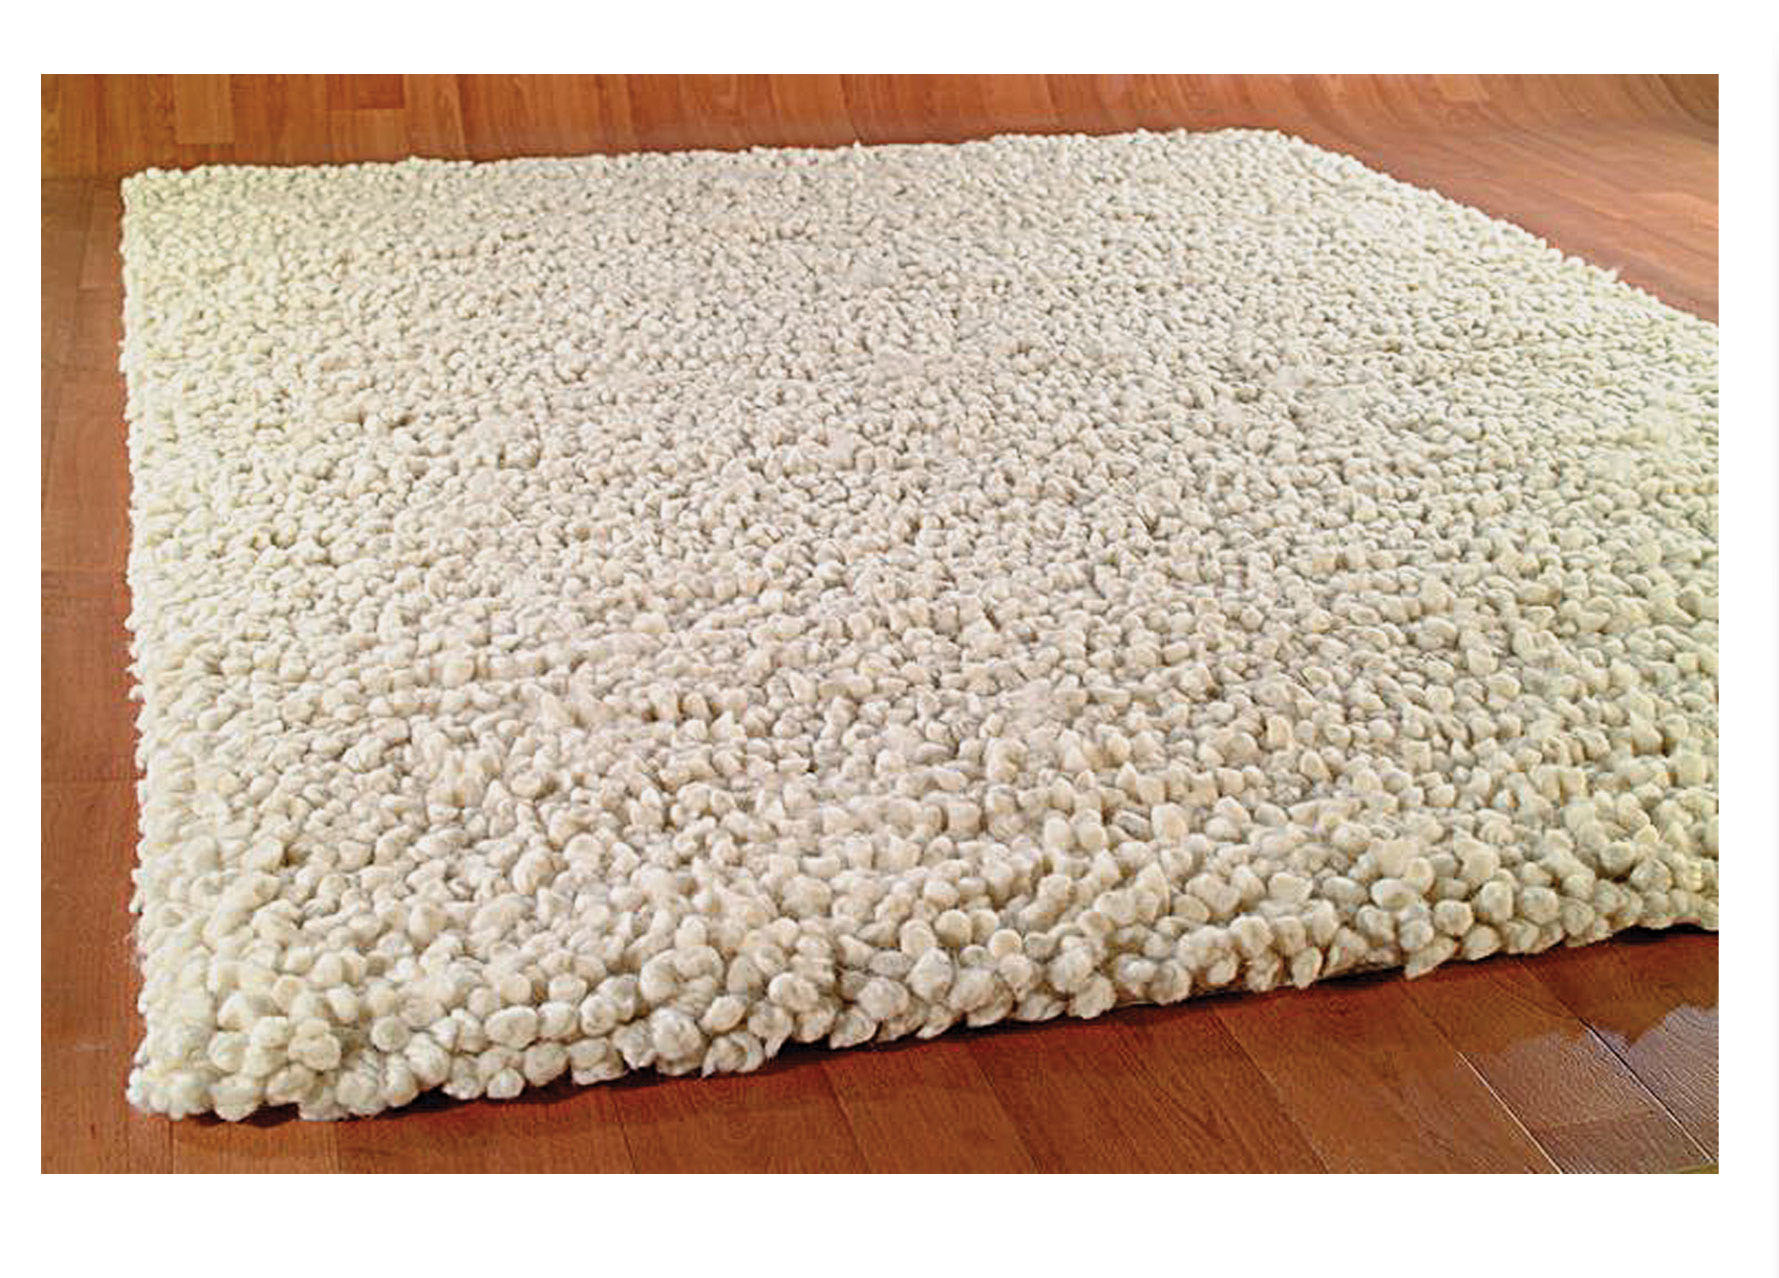 wool carpet how to clean a wool rug - carpet cleaning service, vancouver EEWUIAV